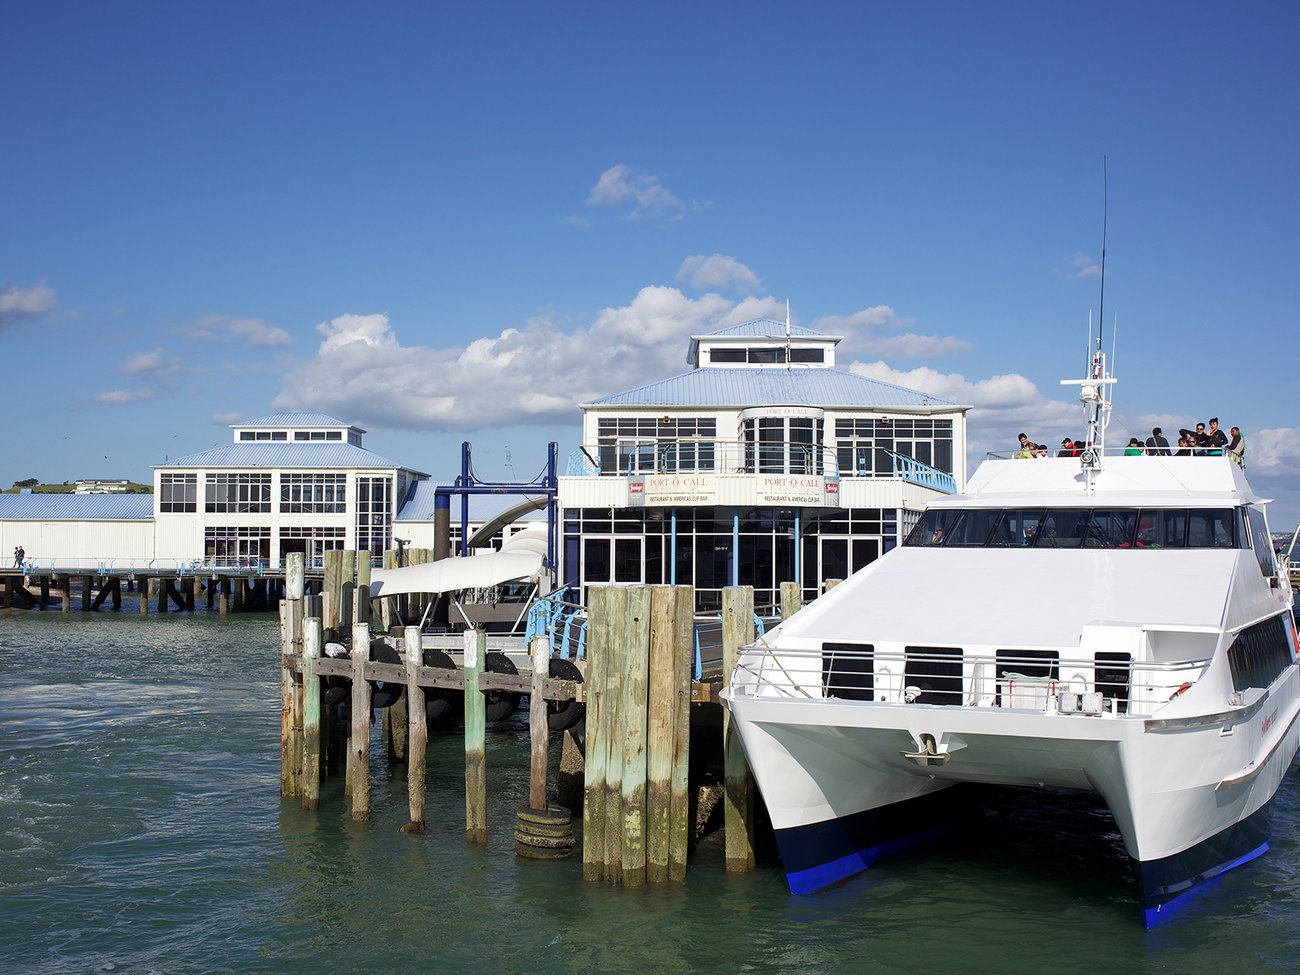 The Devonport Ferry in Auckland